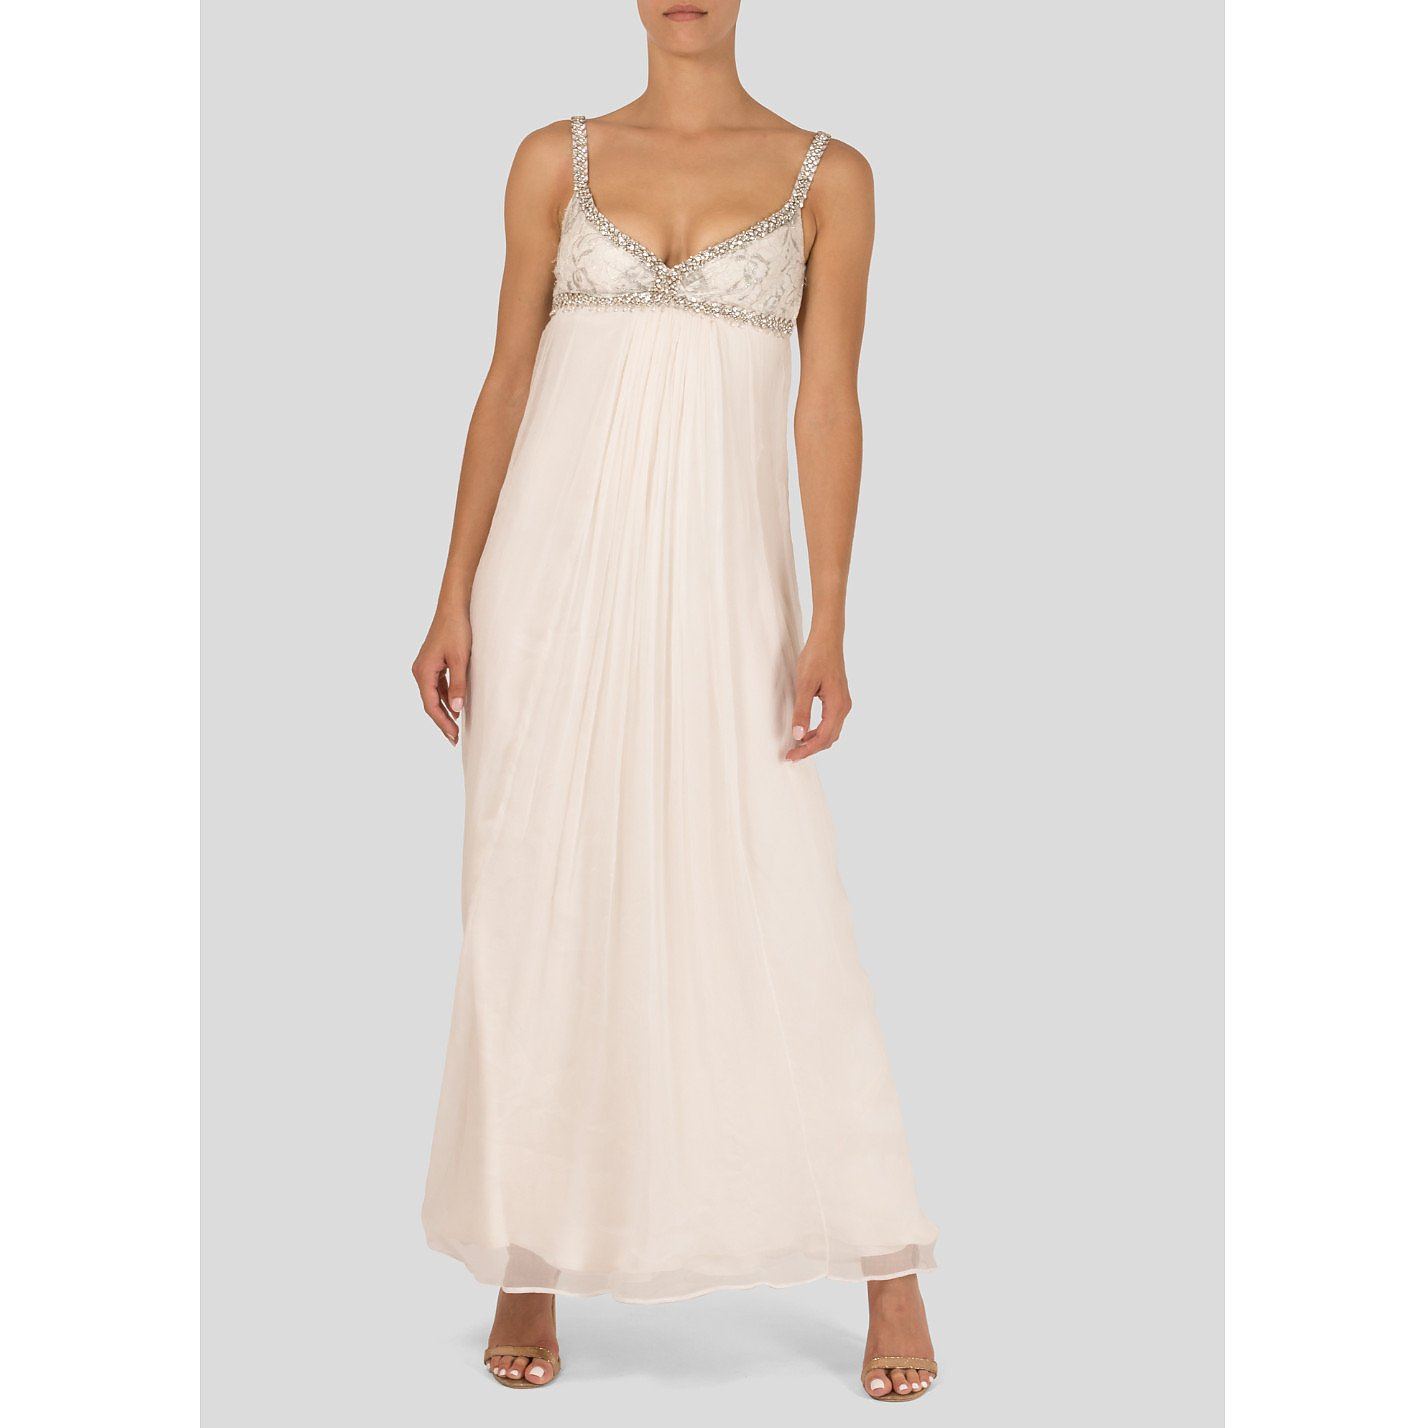 Collette Dinnigan Embellished Empire-Line Gown